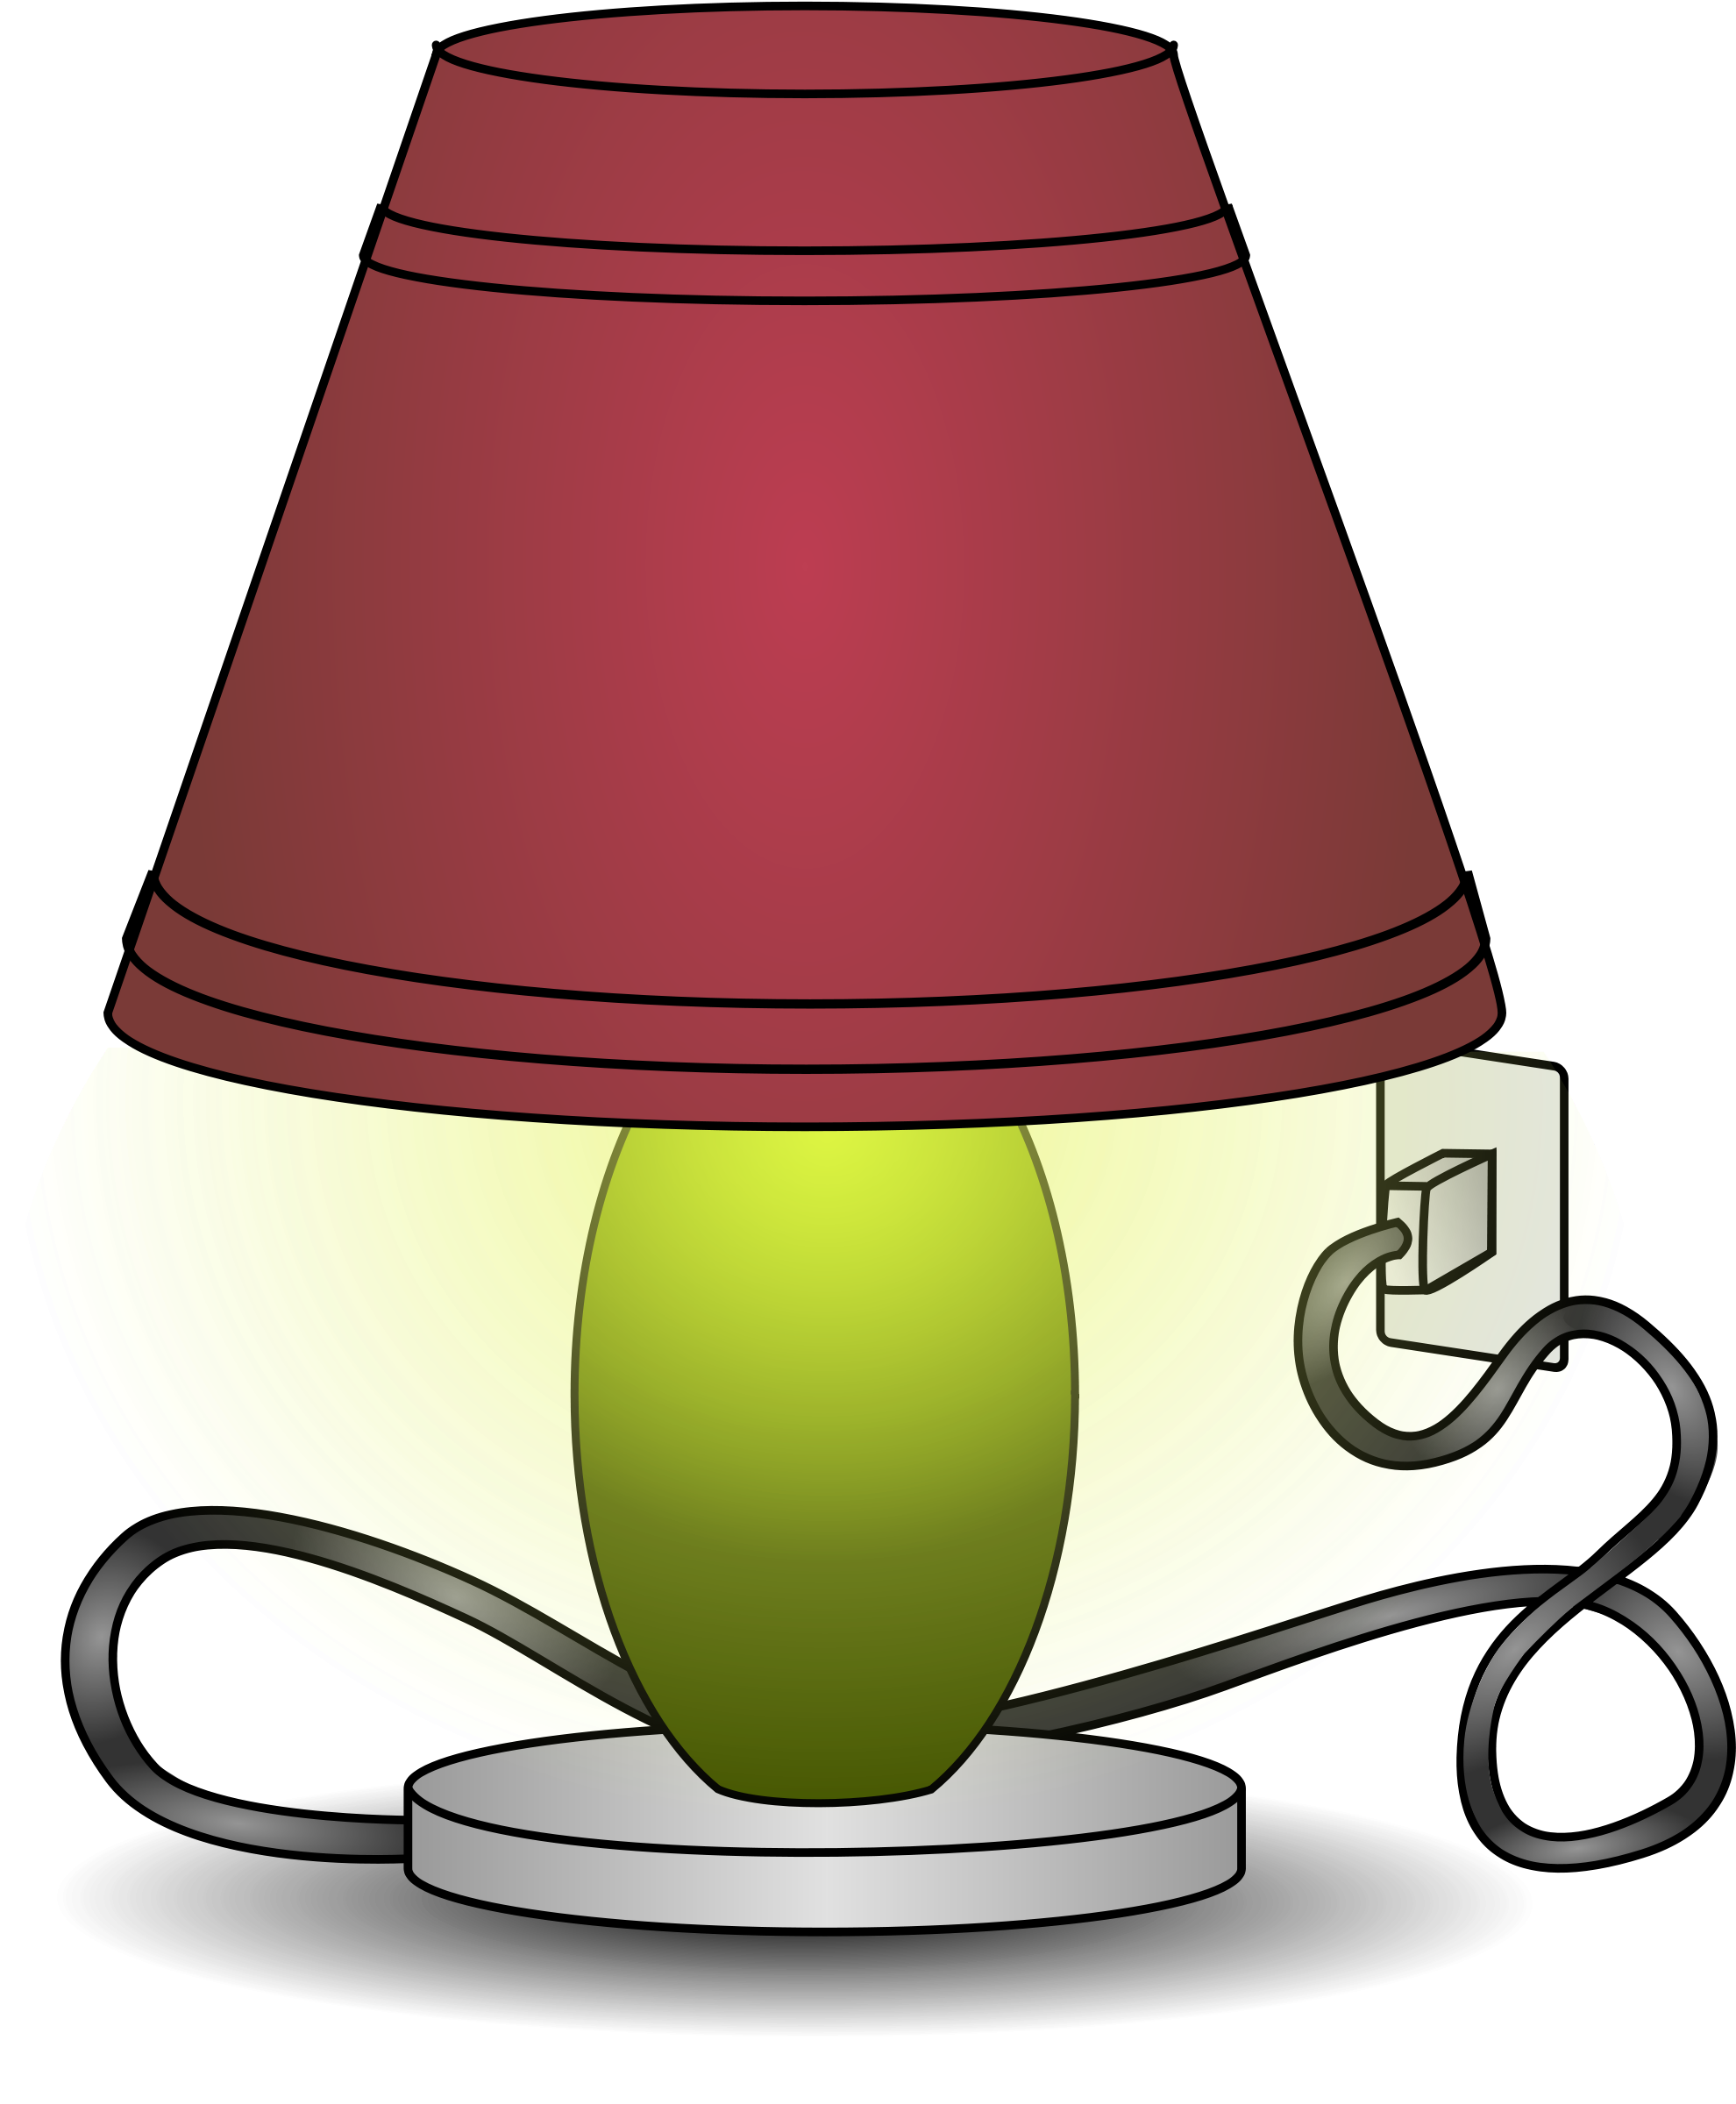 Lamp clipart. New